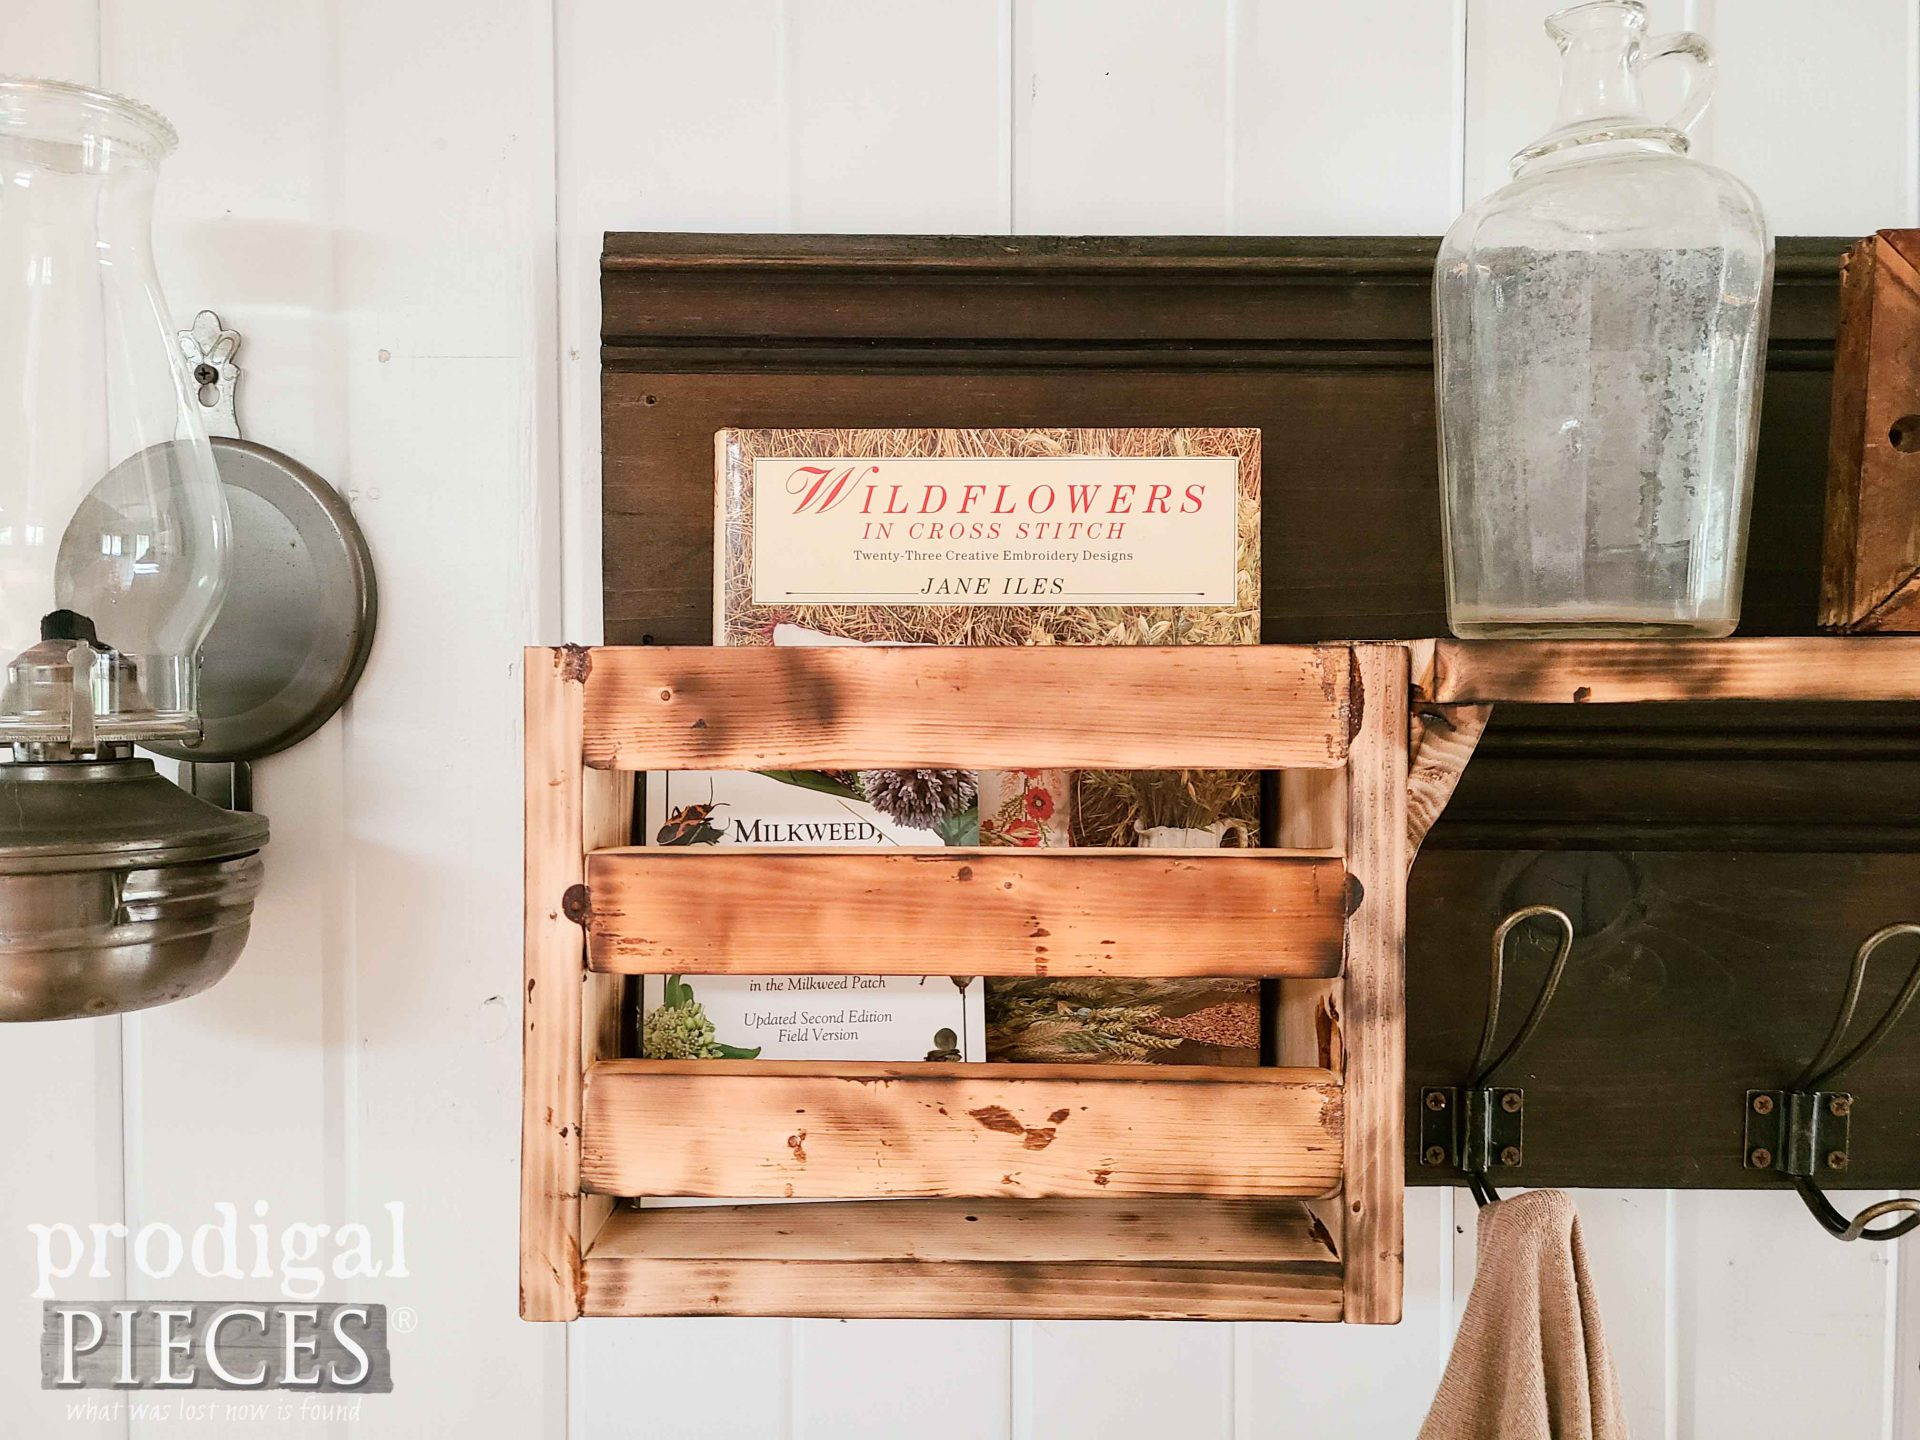 Rustic Crate Shelf DIY Scorched Wood Tutorial by Larissa of Prodigal Pieces | prodigalpieces.com #prodigalpieces #diy #farmhouse #farm #rustic #home